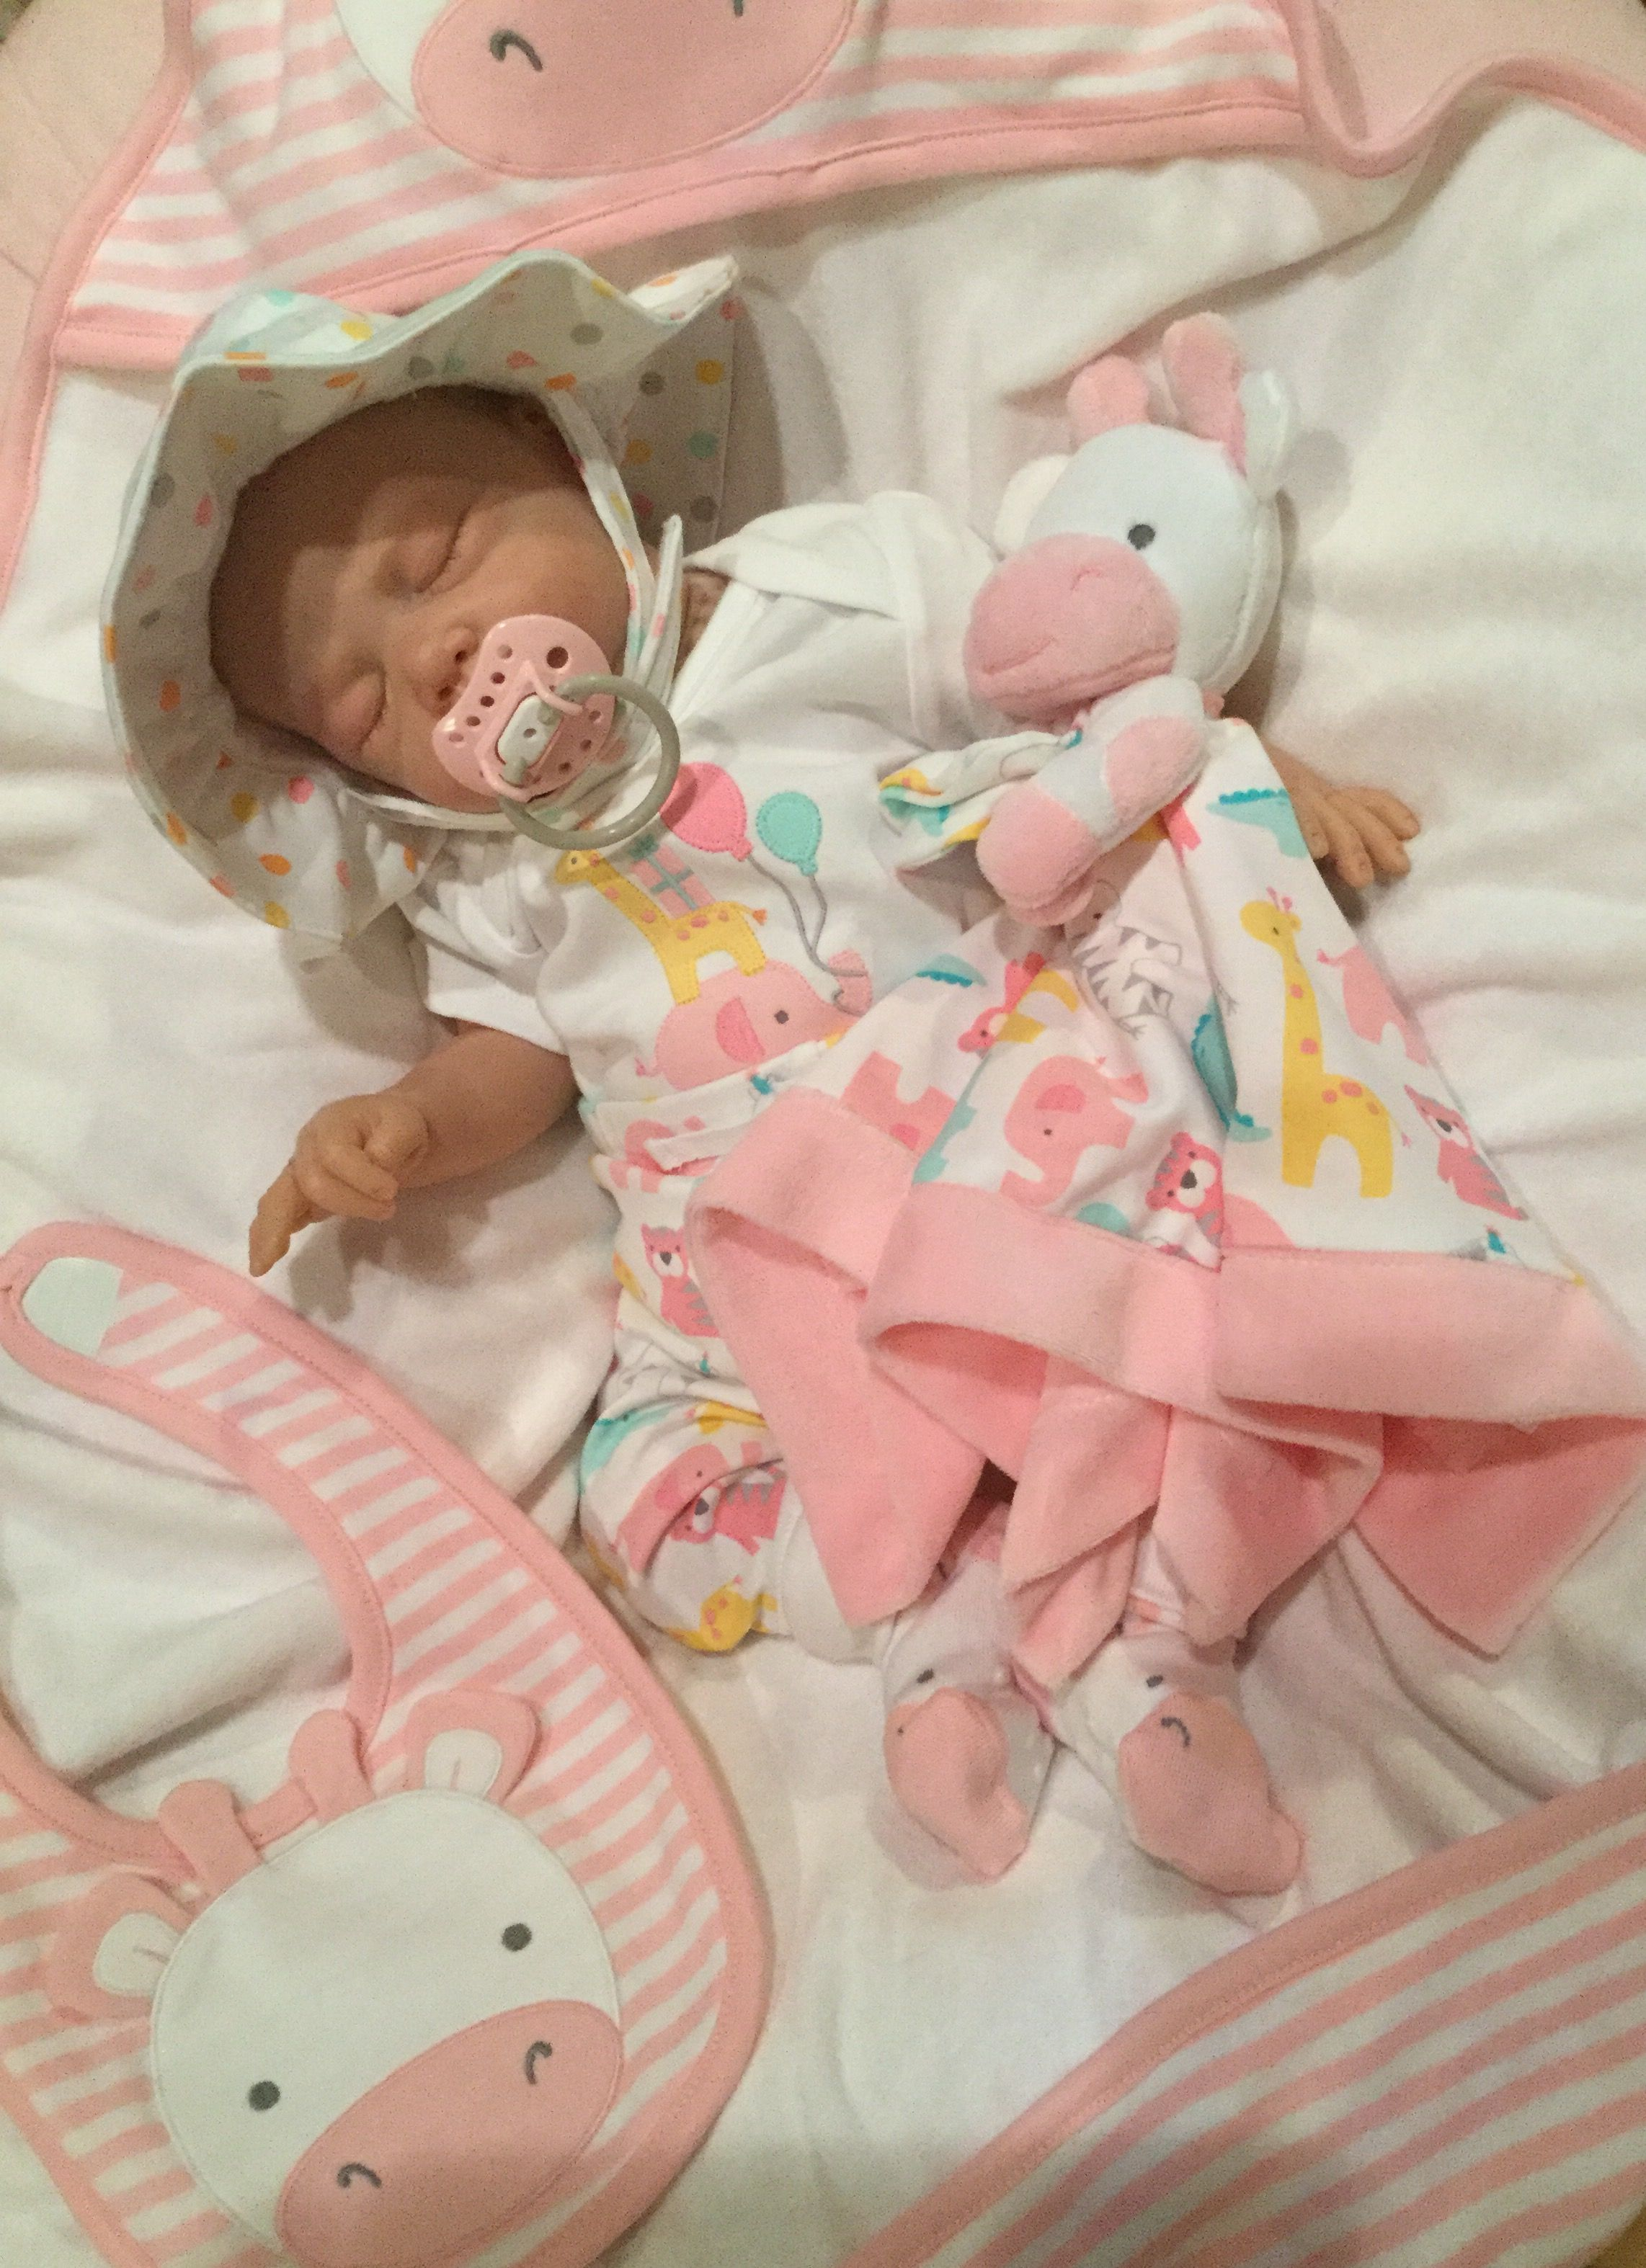 Lillie Beth, reborn baby doll, in Gymboree Animal Party Collection from Spring 2016